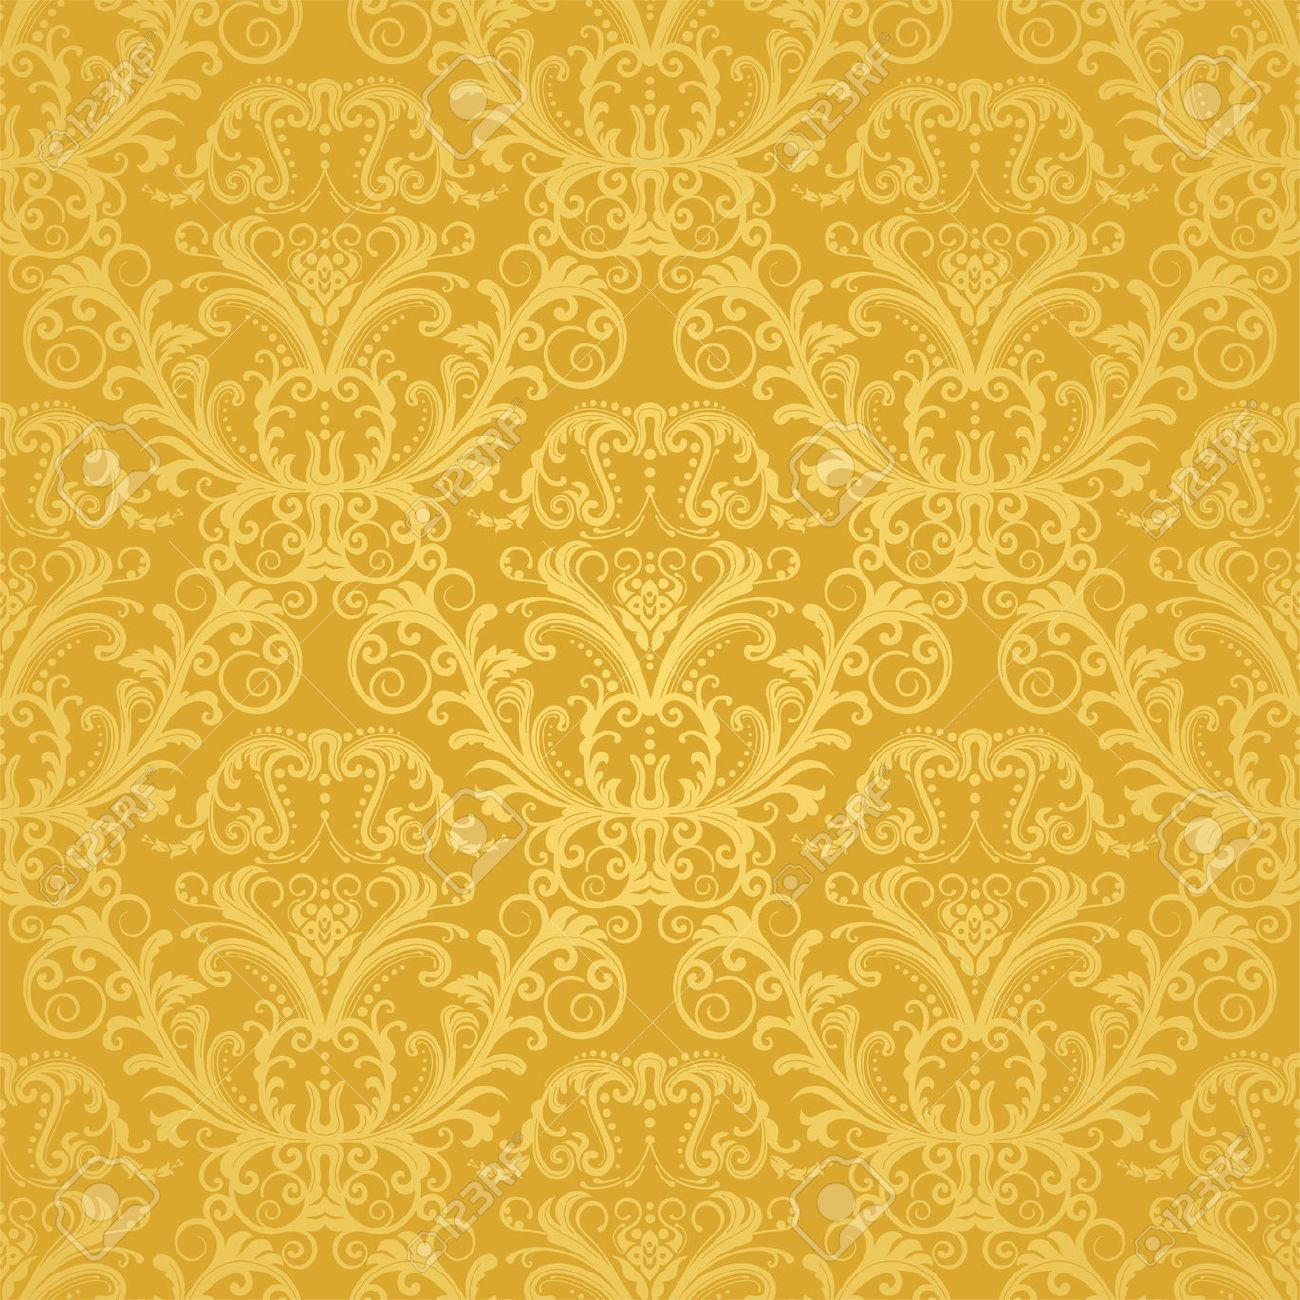 Luxury Seamless Golden Floral Wallpaper Floral Wallpaper Desktop Wallpaper Design Background Vintage